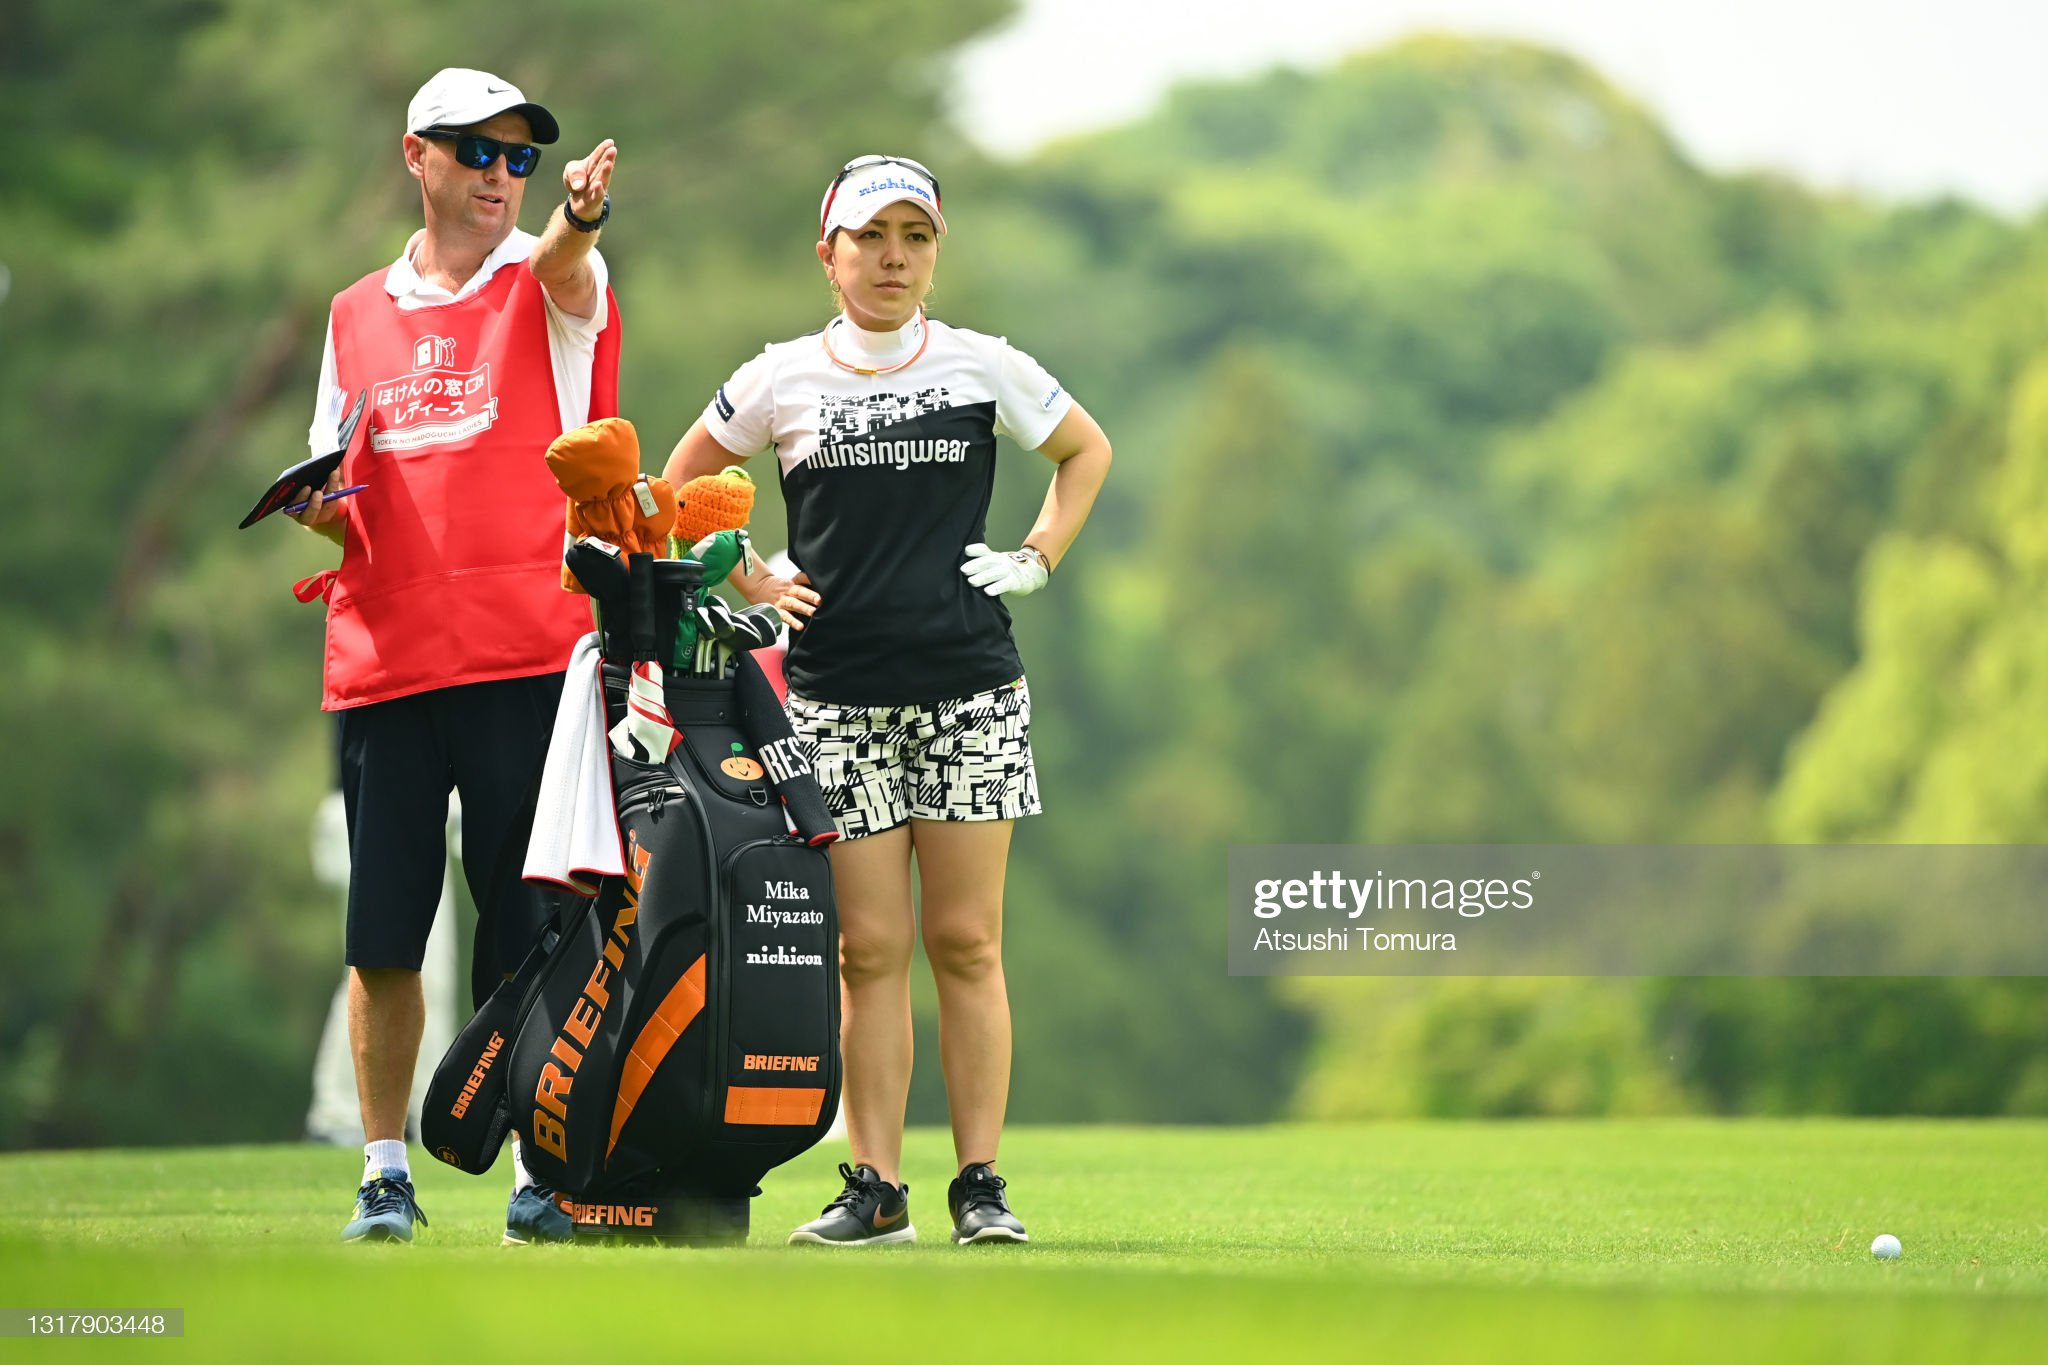 https://media.gettyimages.com/photos/mika-miyazato-of-japan-talks-with-her-caddie-before-her-second-shot-picture-id1317903448?s=2048x2048